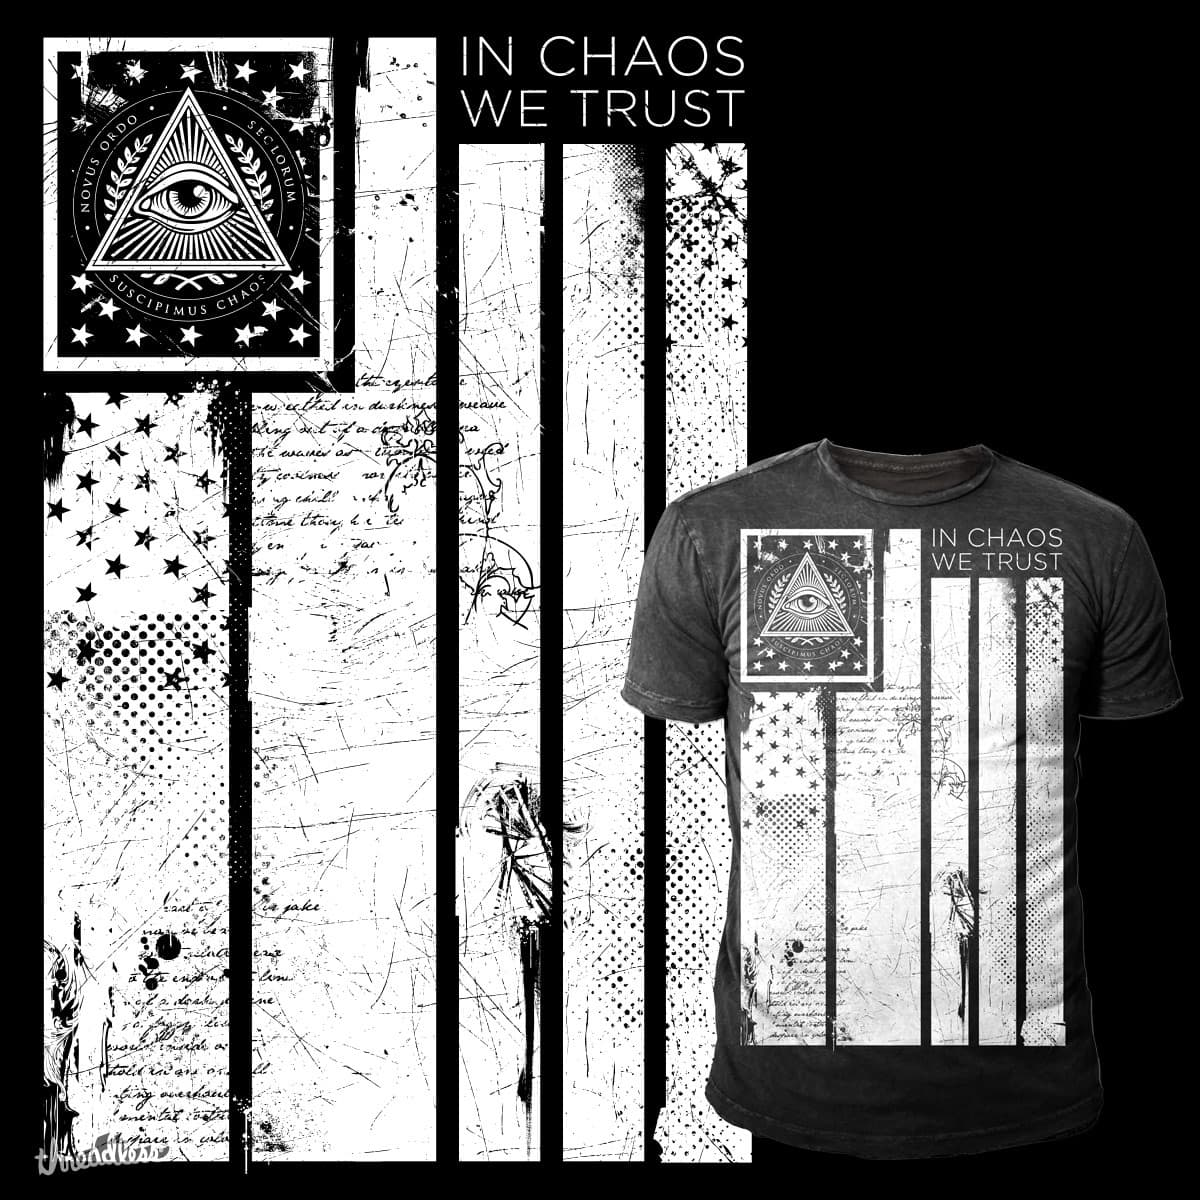 In Chaos We Trust by feed_steven on Threadless